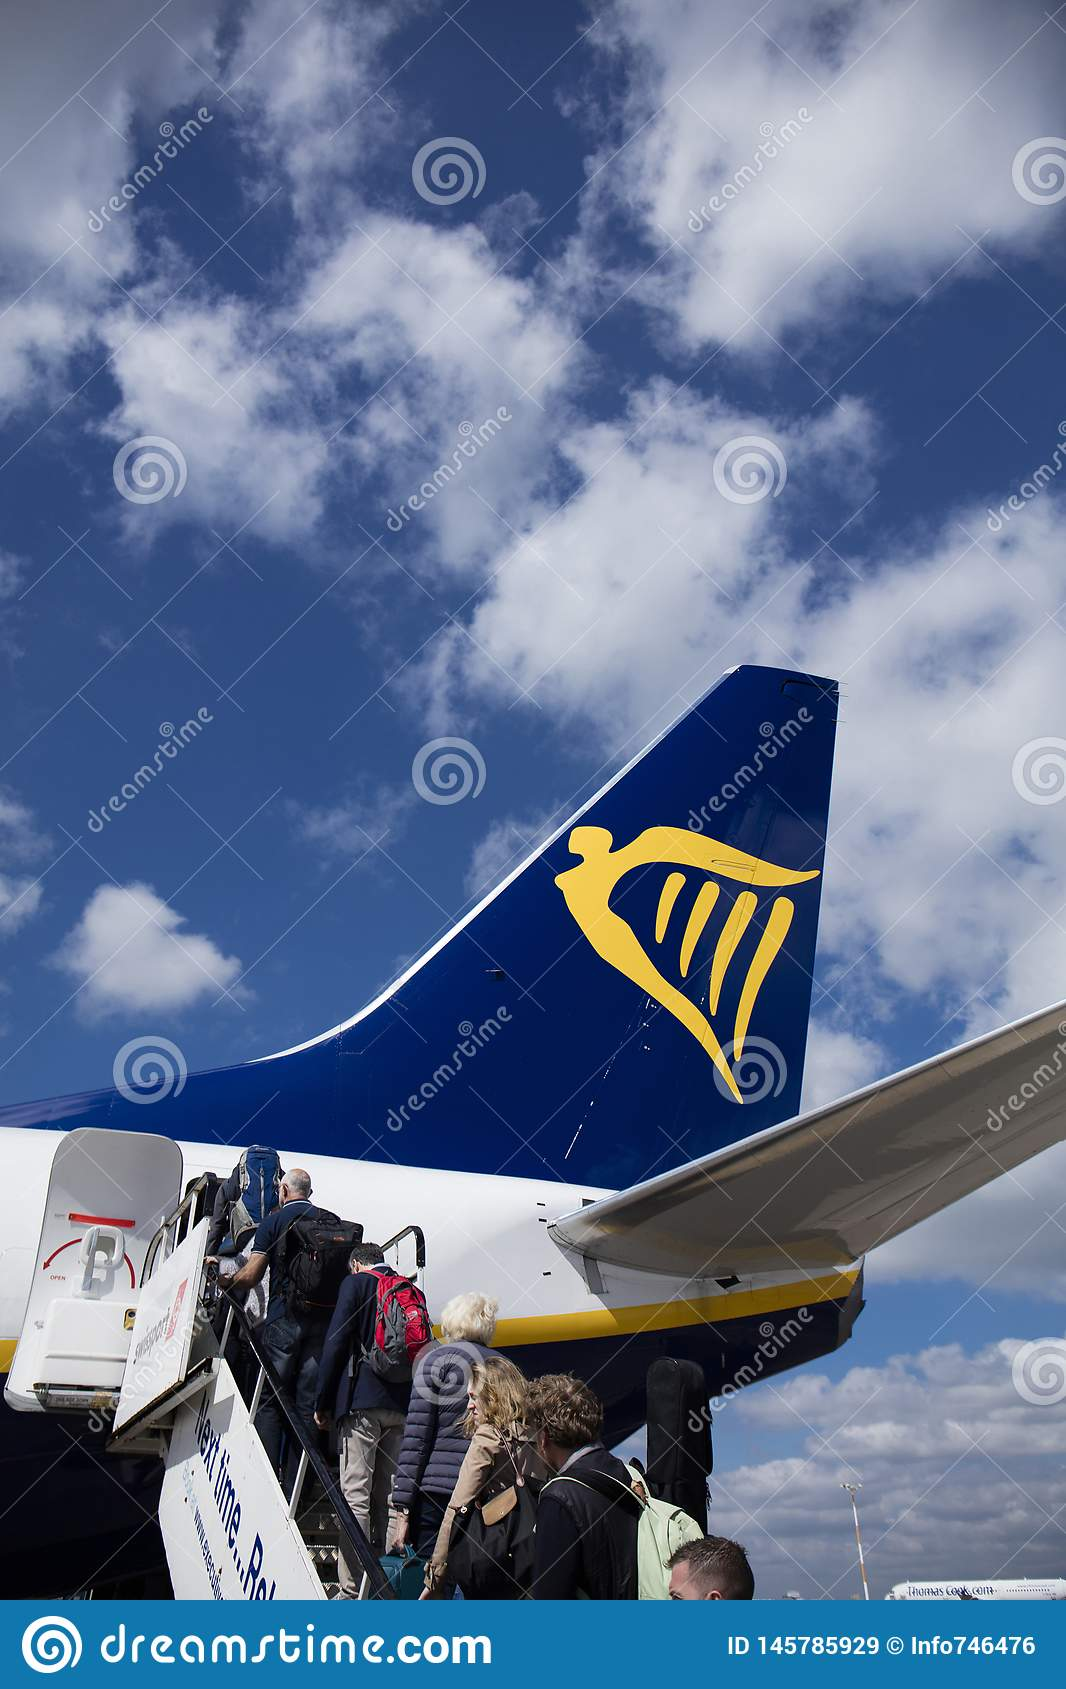 Ryanair Boeing 737 with passengers boarding at rear doors - East Midlands Airport, Derbyshire, United Kingdom - 15th May 2016